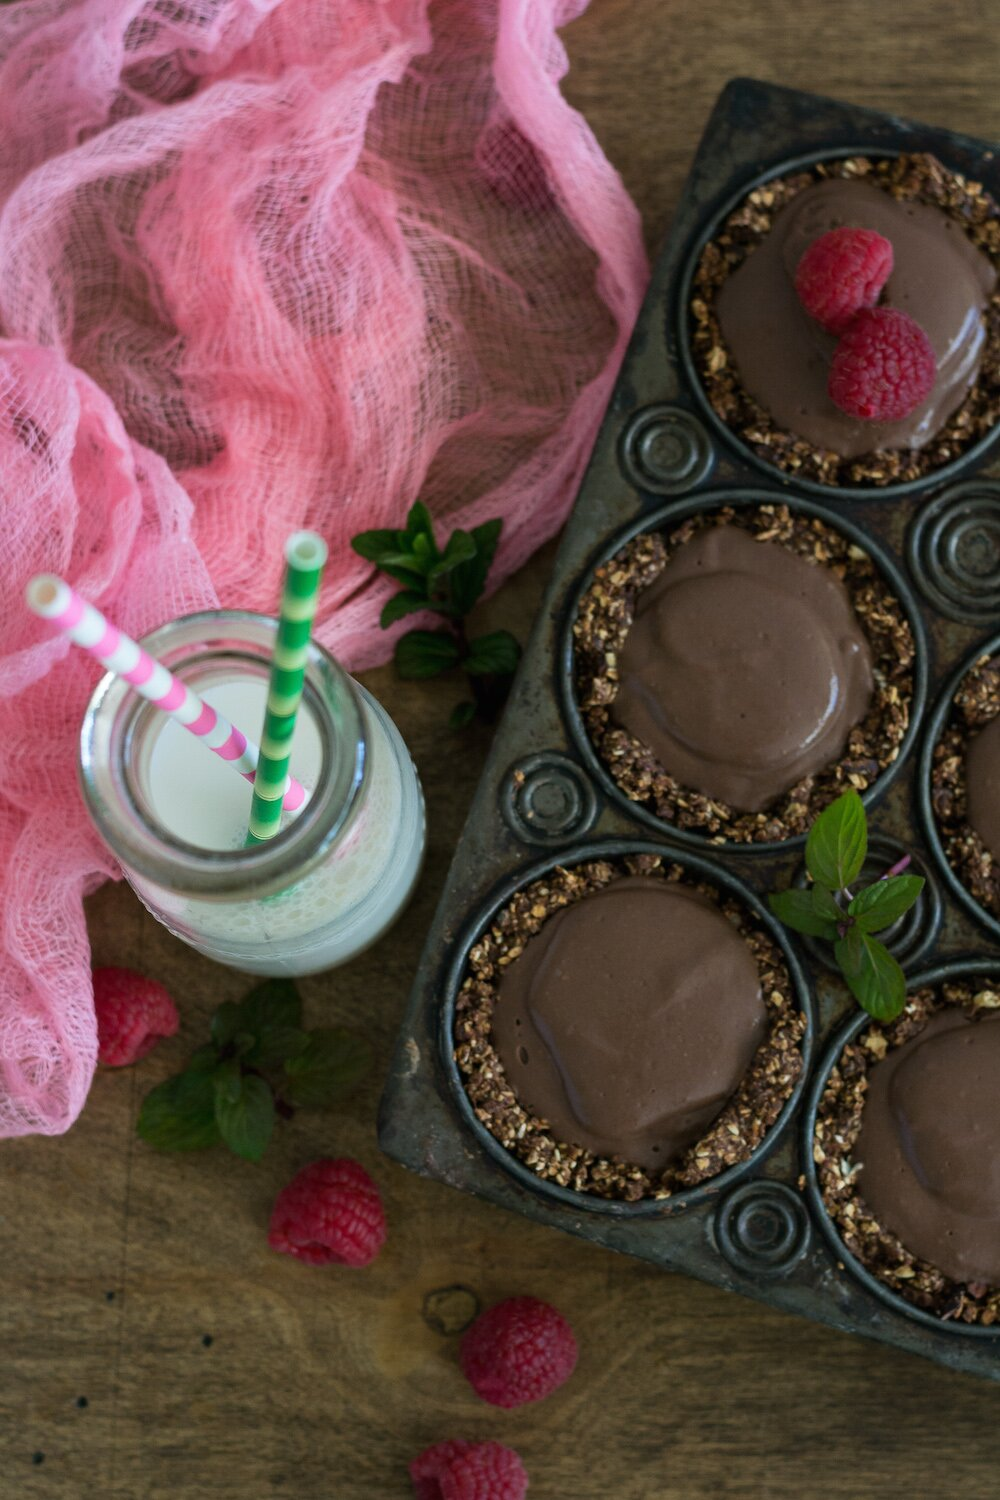 Mini Chocolate Mint Pudding Pies. Sugar-free, Oil-free, Gluten-free. + NuNaturals Giveaway!